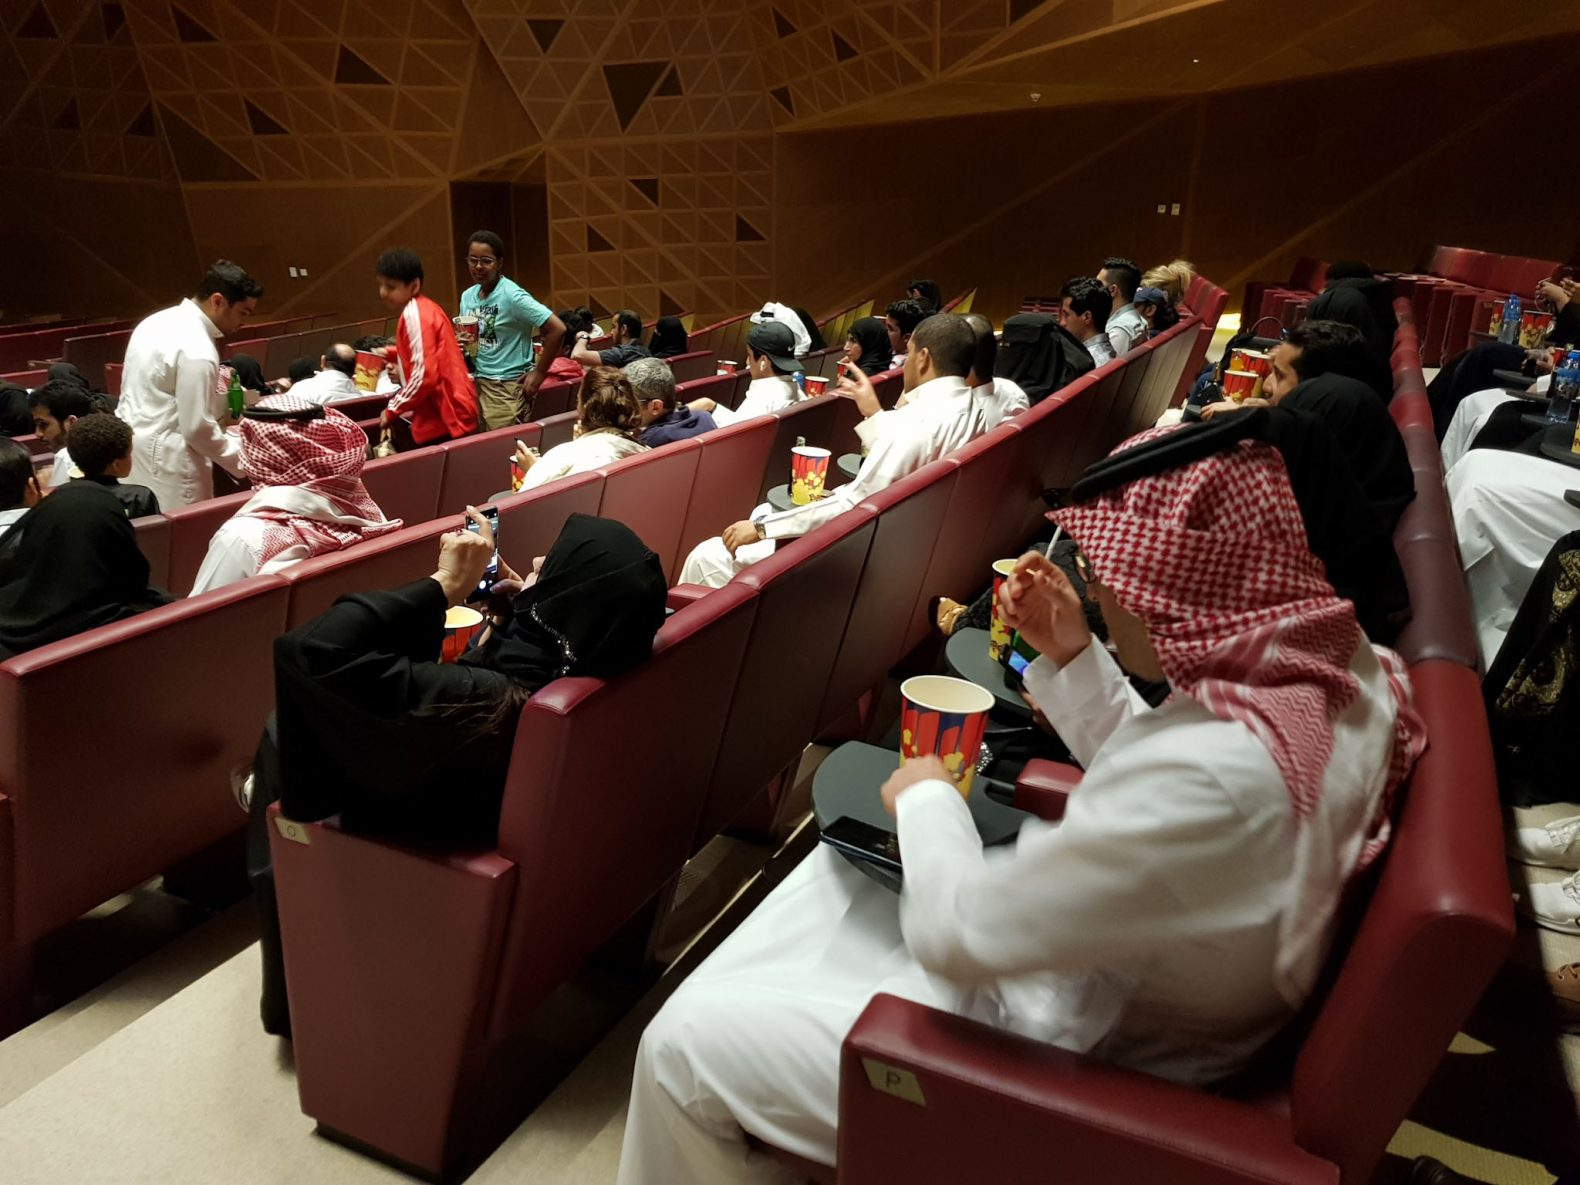 Saudi Cinema Gets A Boost After Third Cinema Operator Plans To Open 30 New Theatres